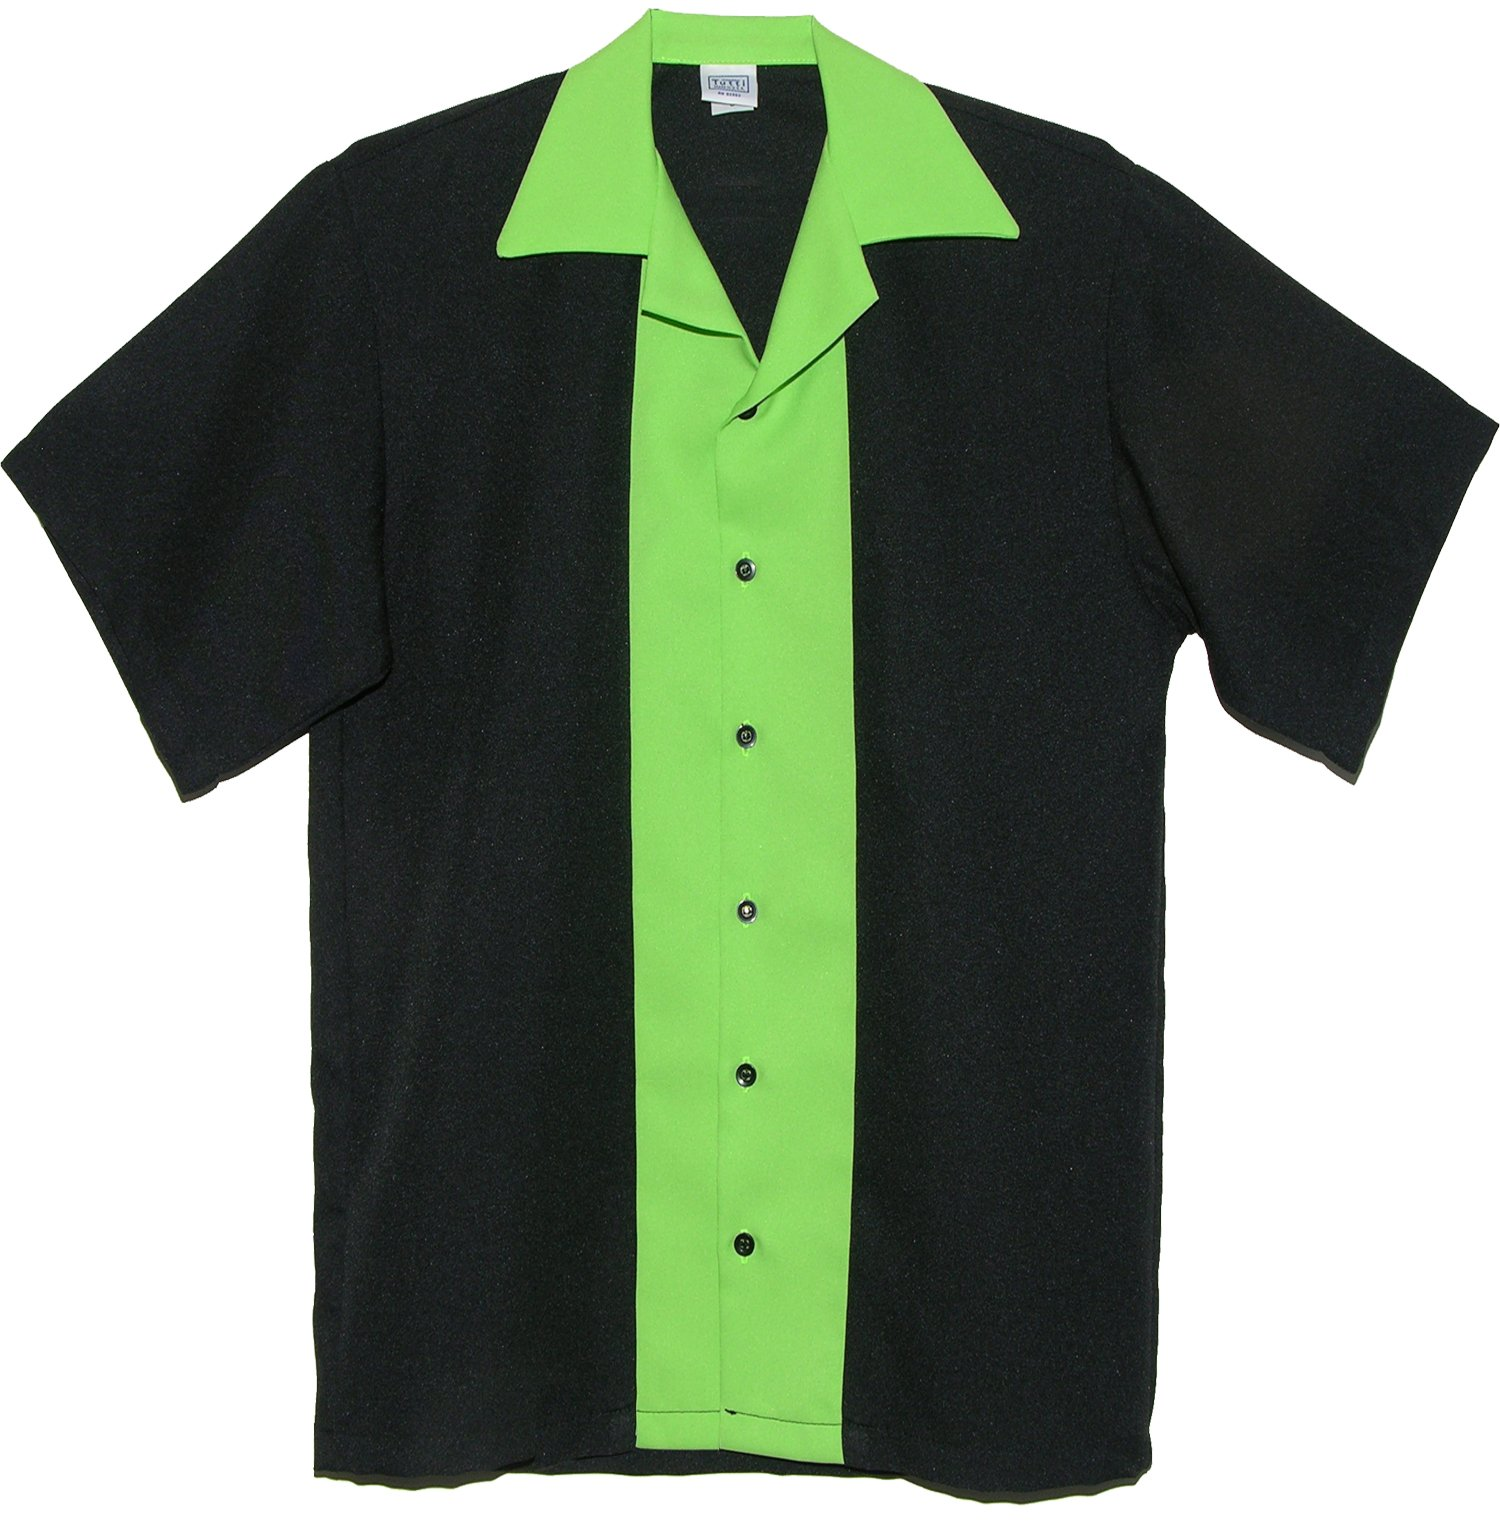 Tutti Mens Bowling Shirts (Small) Lime Green